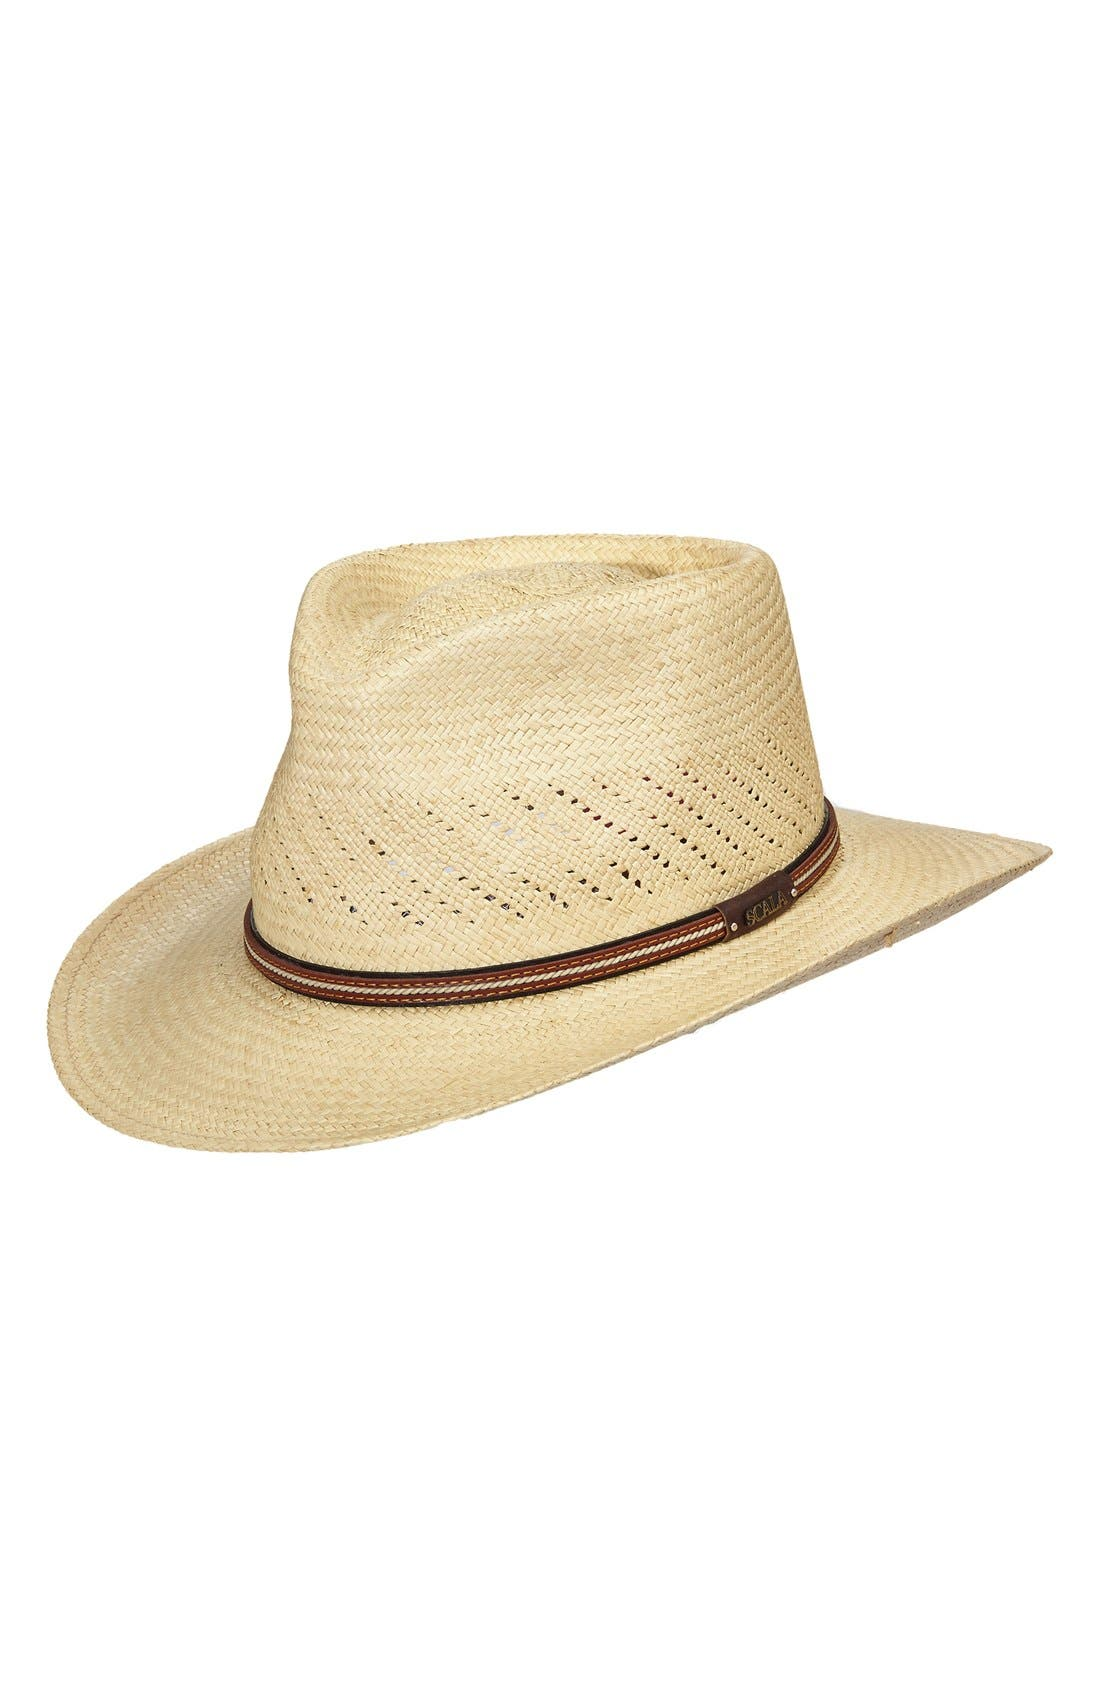 Straw Panama Hat,                         Main,                         color, NATURAL